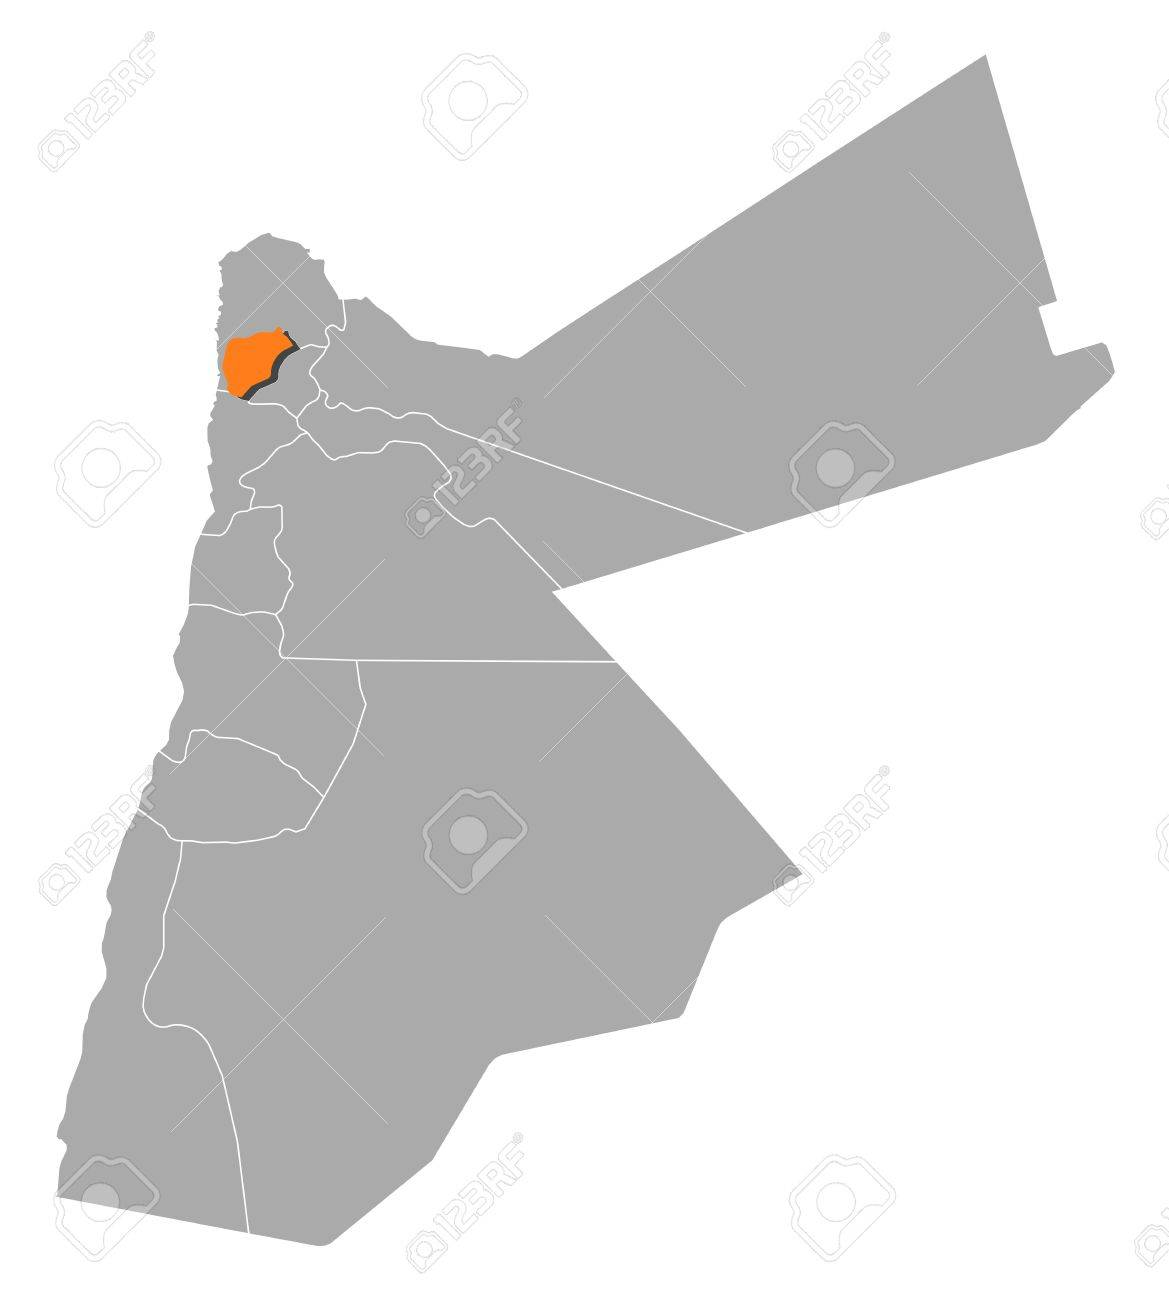 Jordan Political Map.Political Map Of Jordan With The Several Governorates Where Ajloun